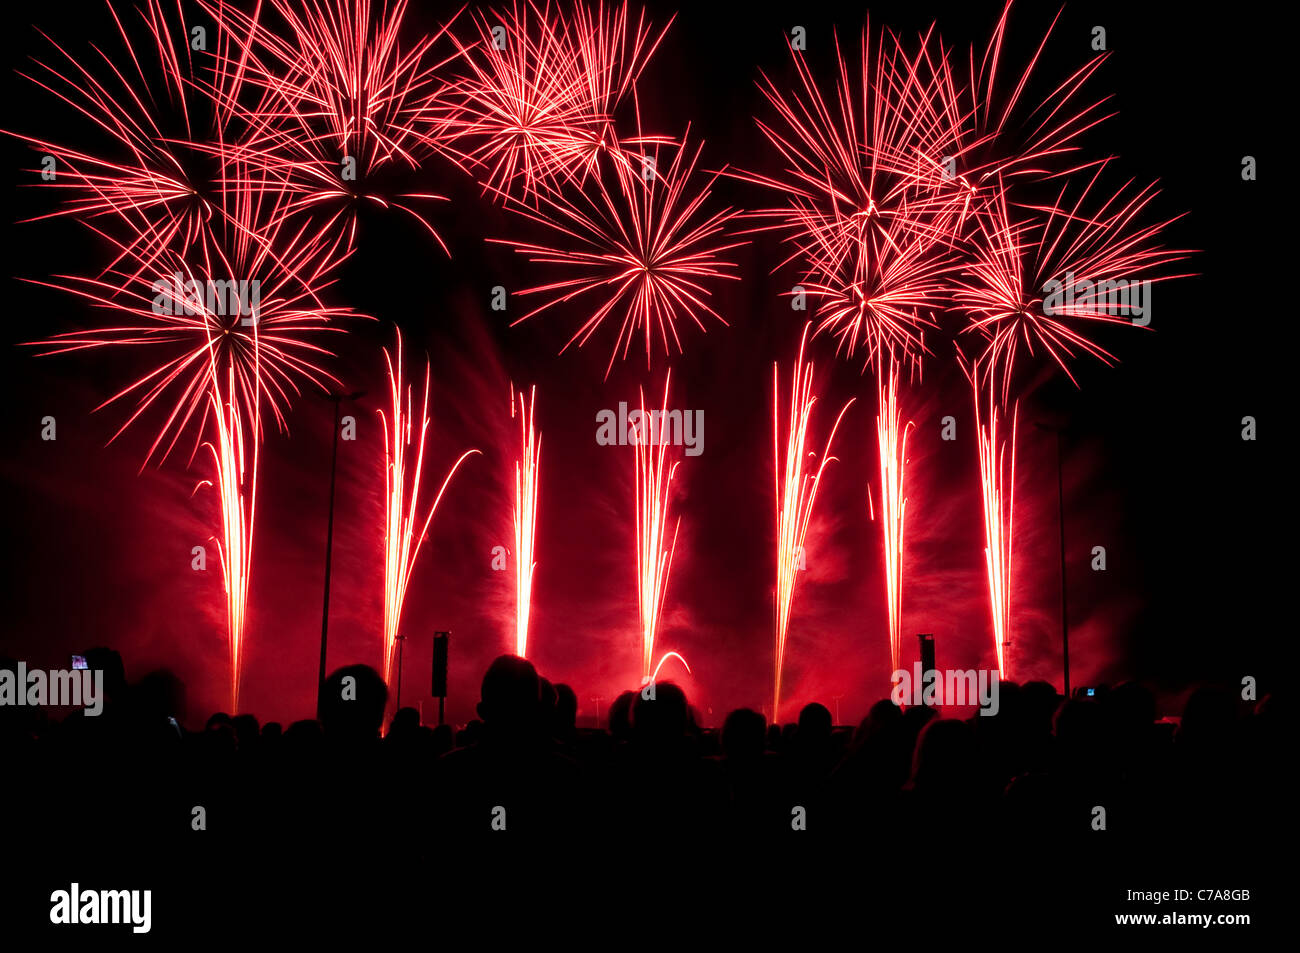 Fireworks synchronized to music, preliminary decision to the fireworks world championship Pyronale, Erfurt, Germany Stock Photo